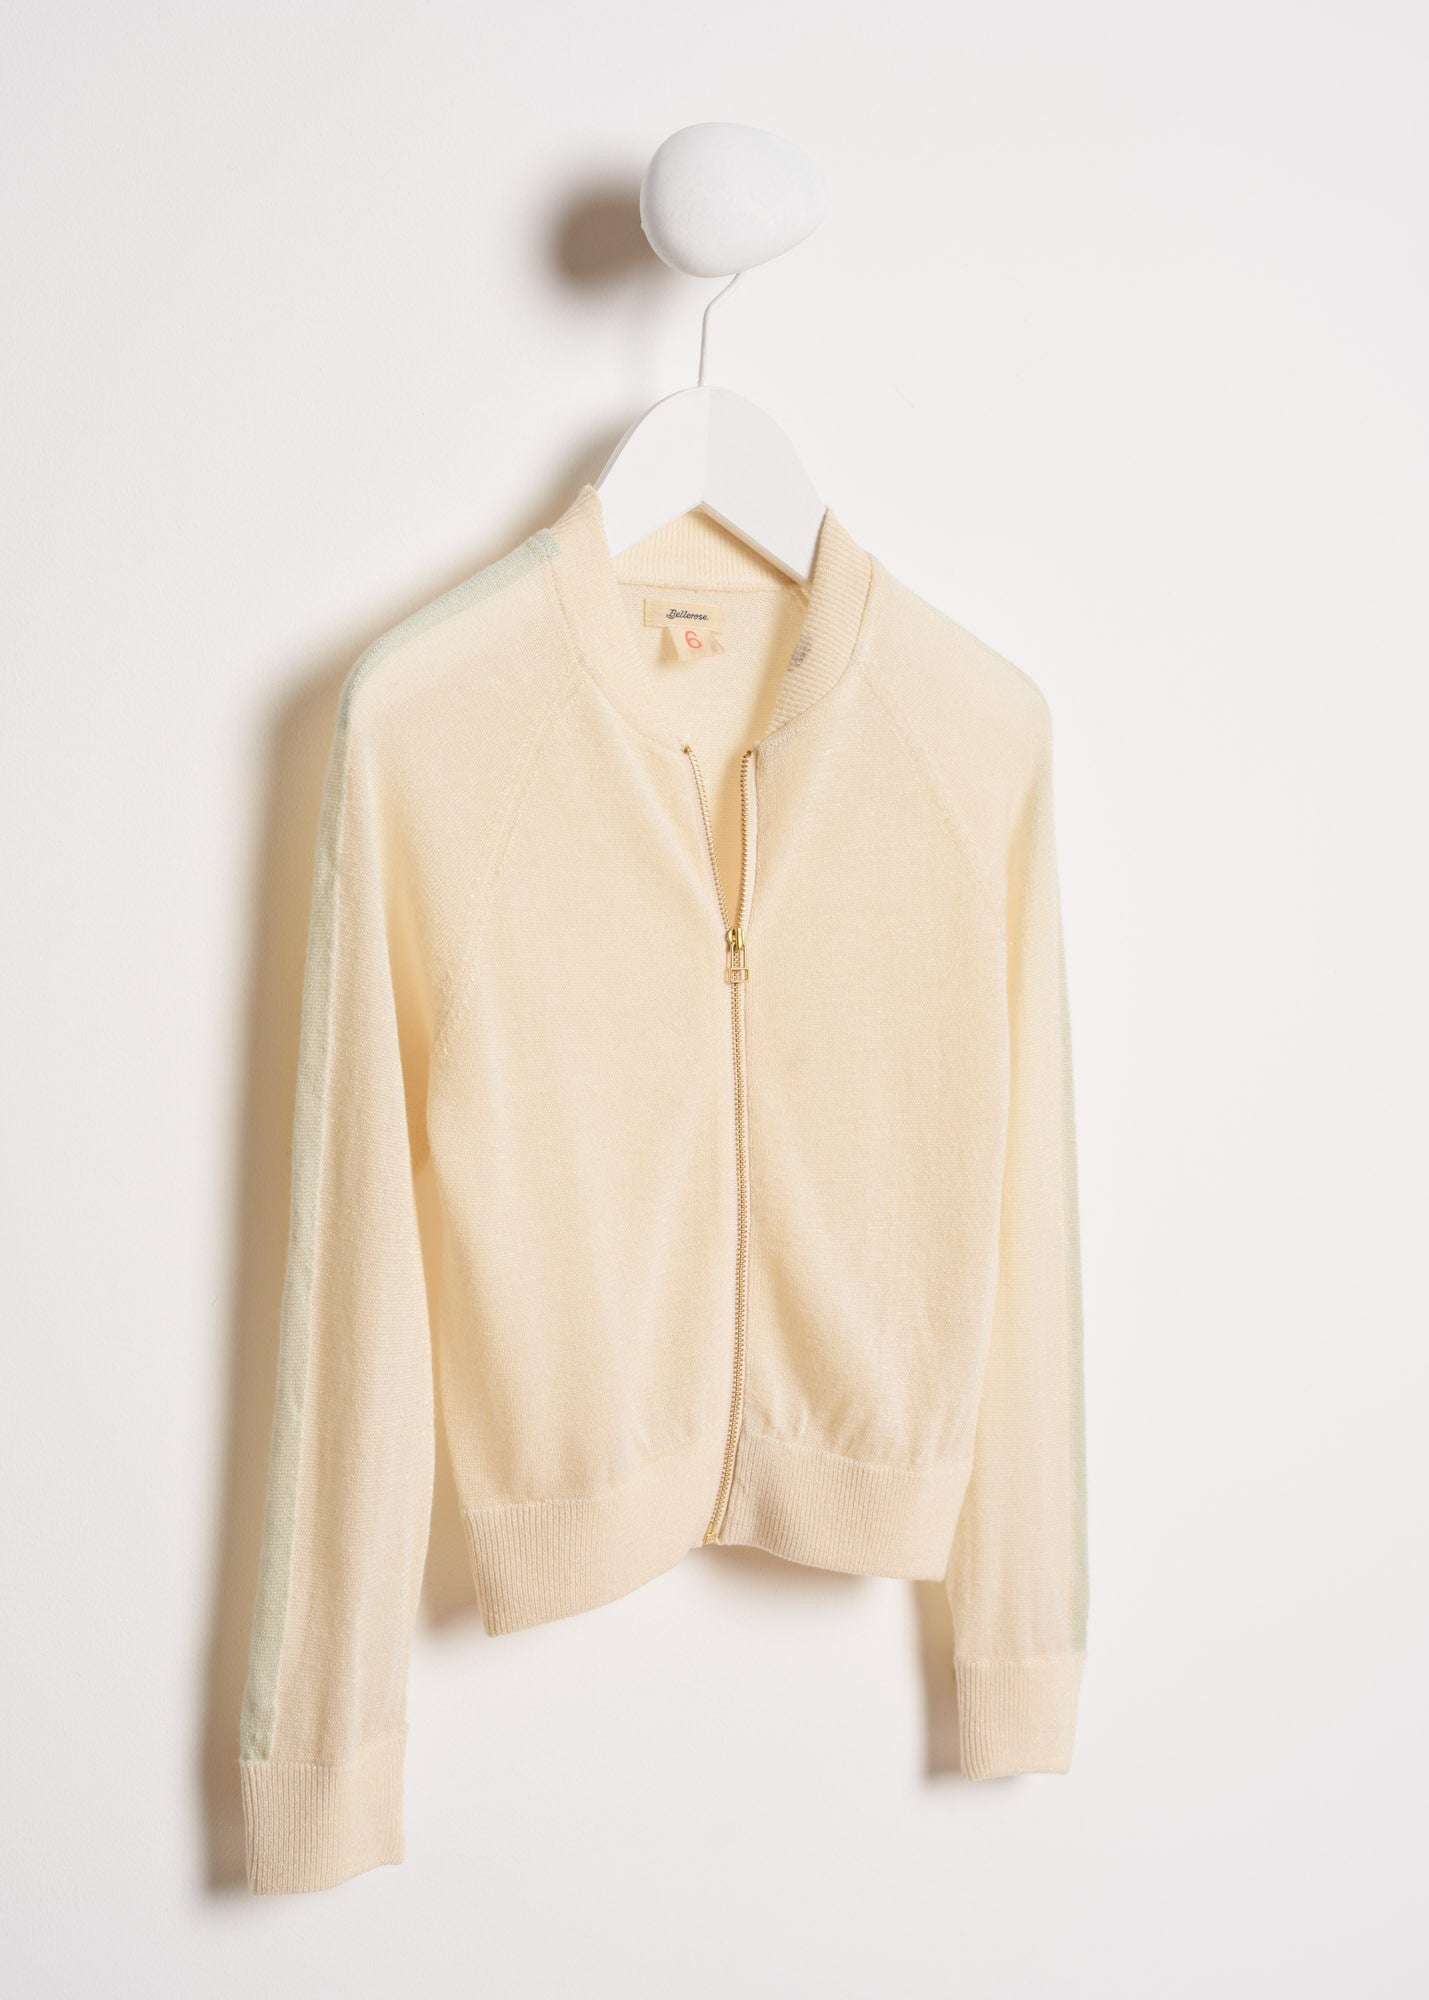 Bellerose Cream Lurex Sweater